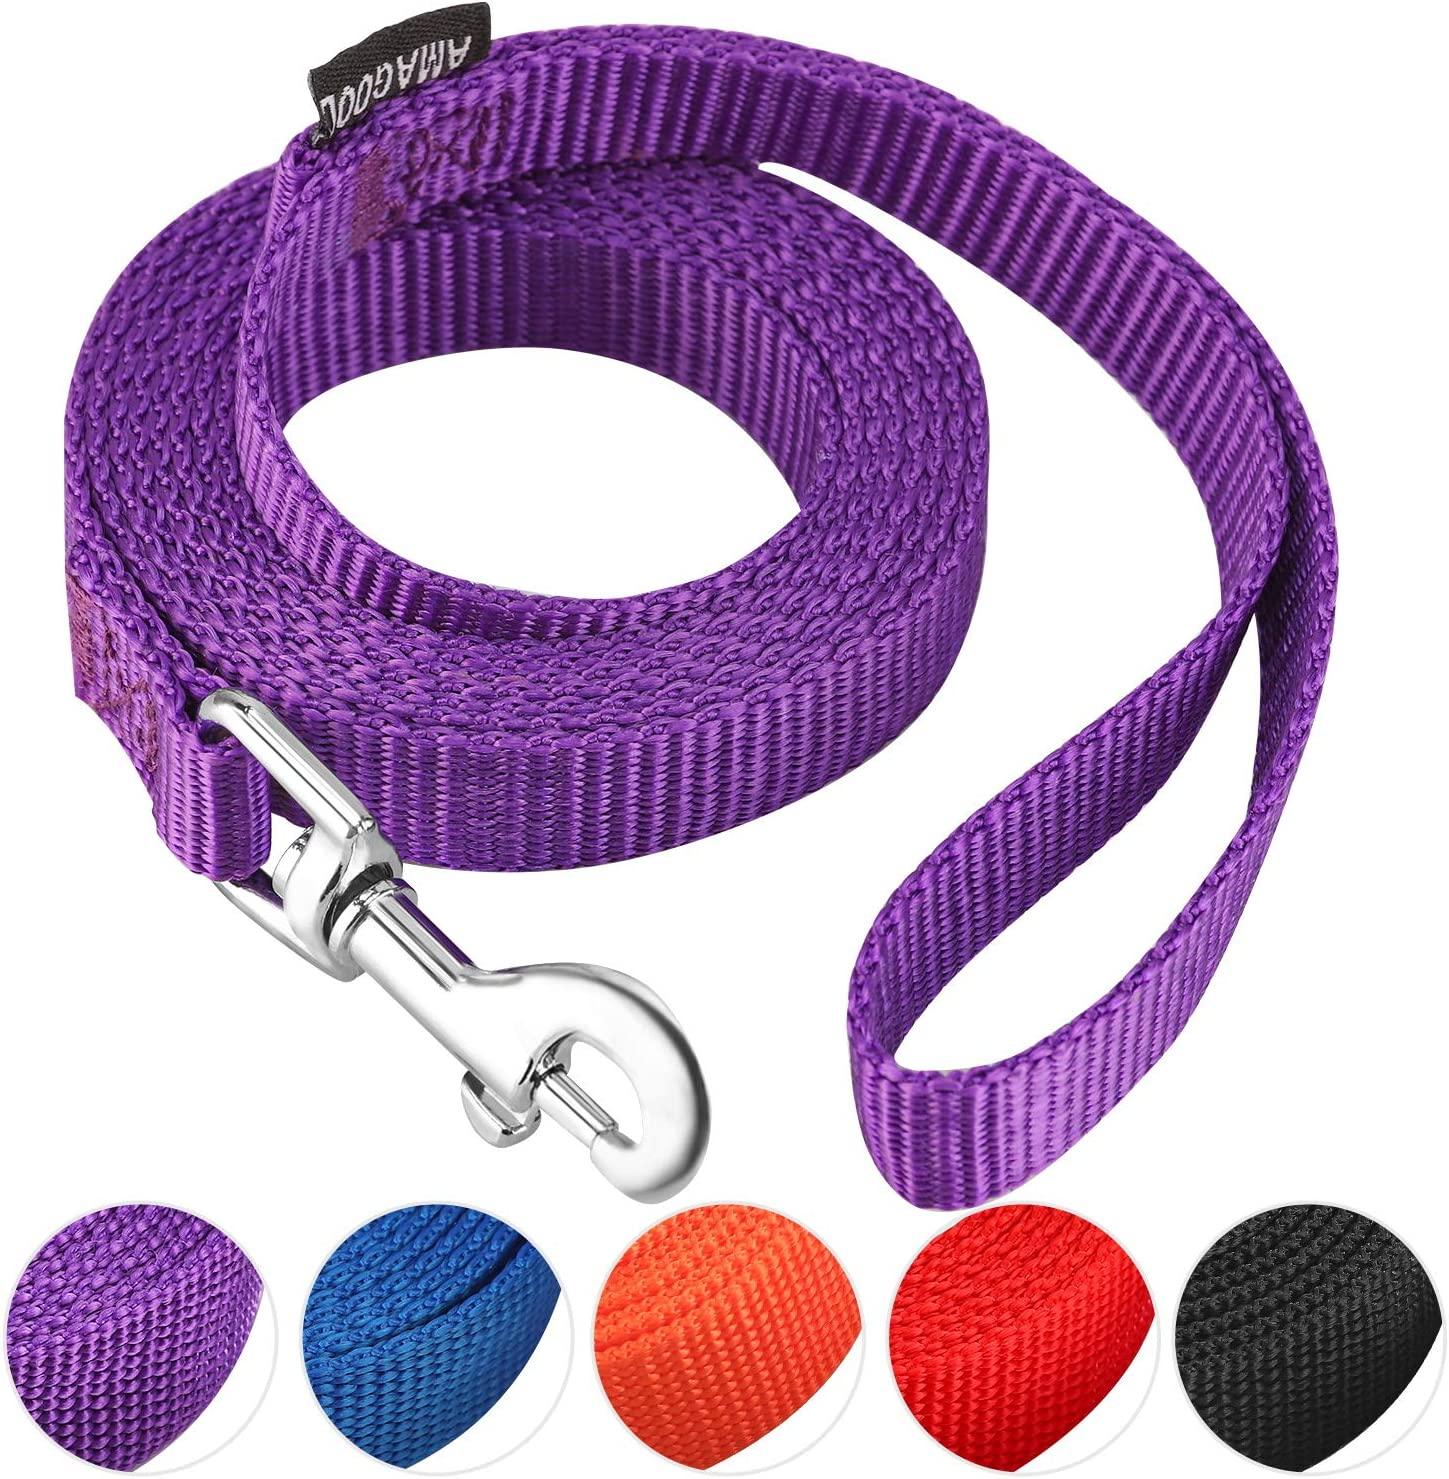 AMAGOOD 6 FT Puppy/Dog Leash, Strong and Durable Traditional Style Leash with Easy to Use Collar Hook,Dog Lead Great for Small and Medium and Large